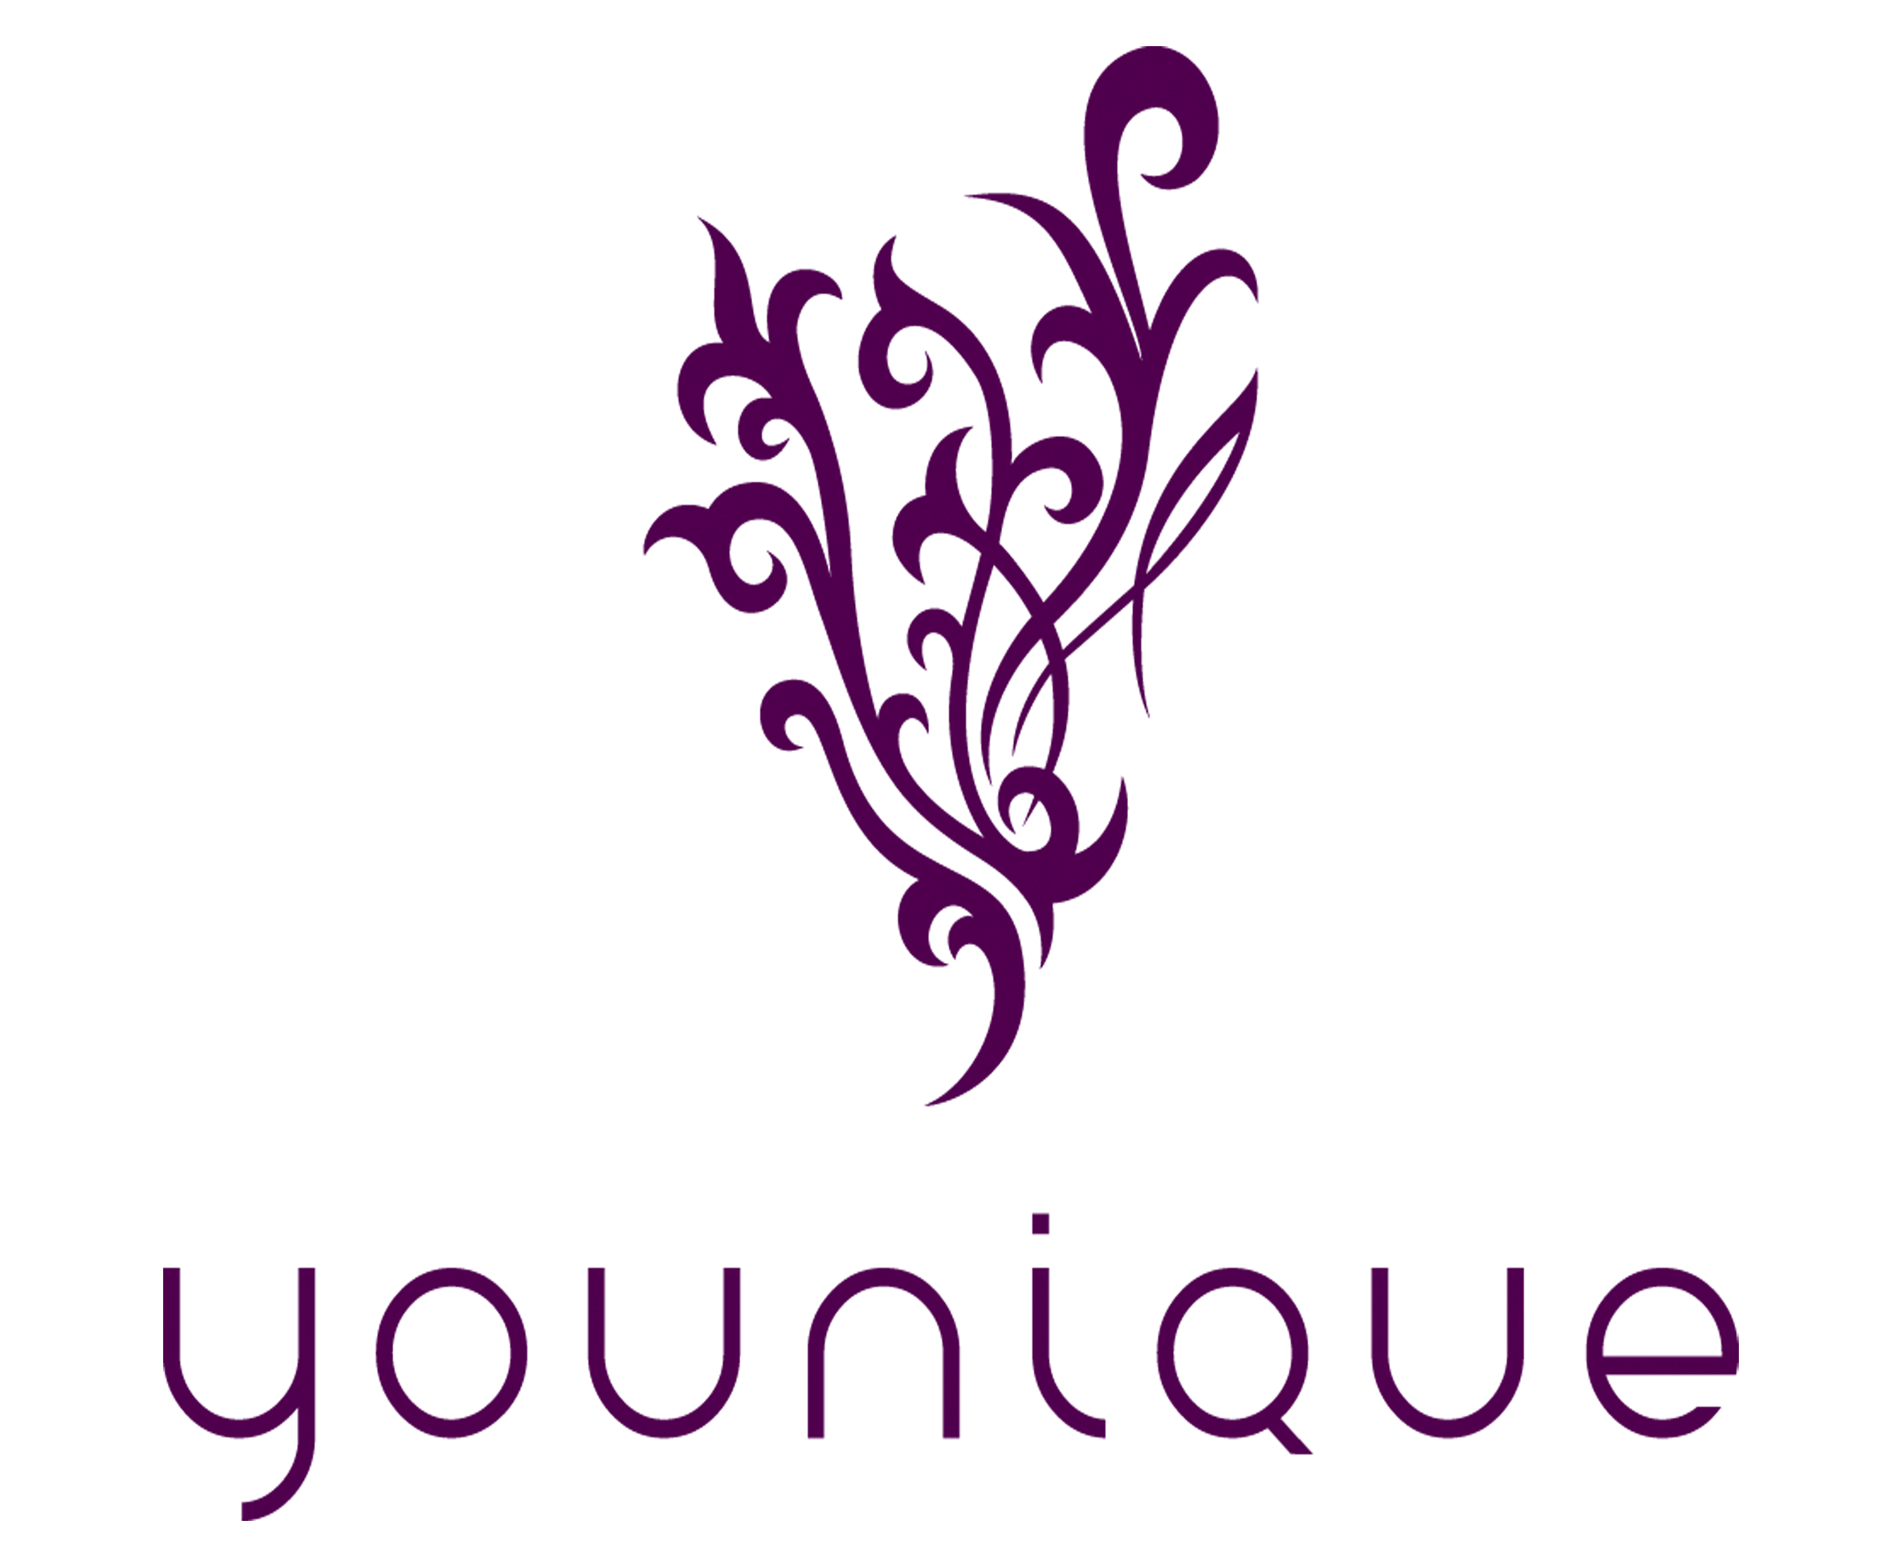 Younique flourish png. Logo symbol meaning history